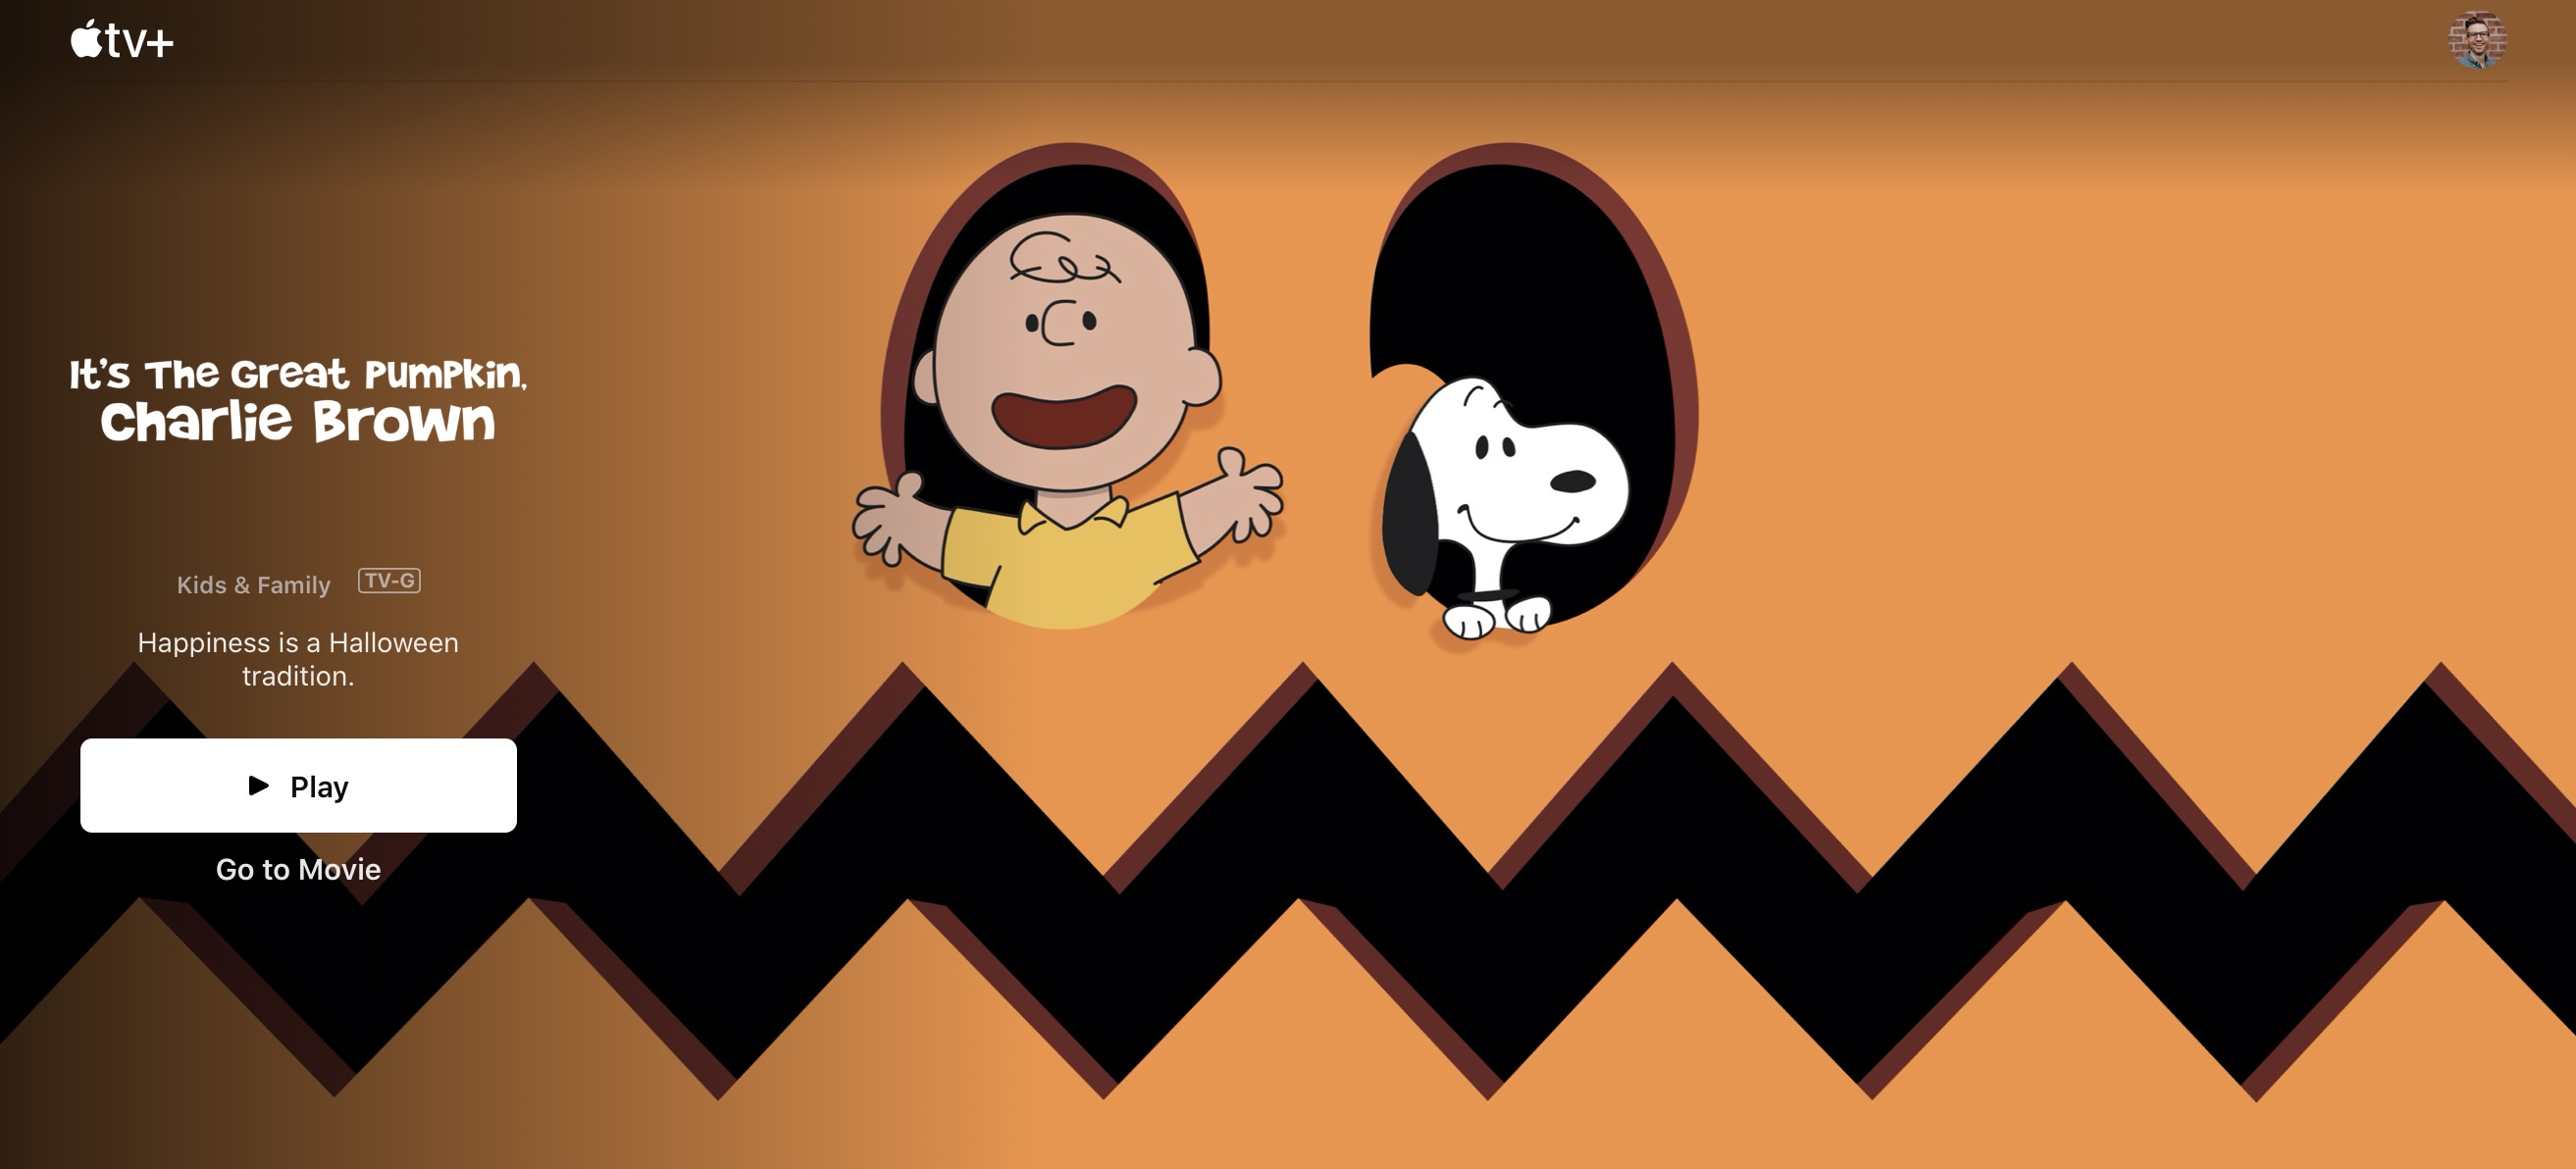 photo of How to watch the Peanuts Charlie Brown holiday specials this year image